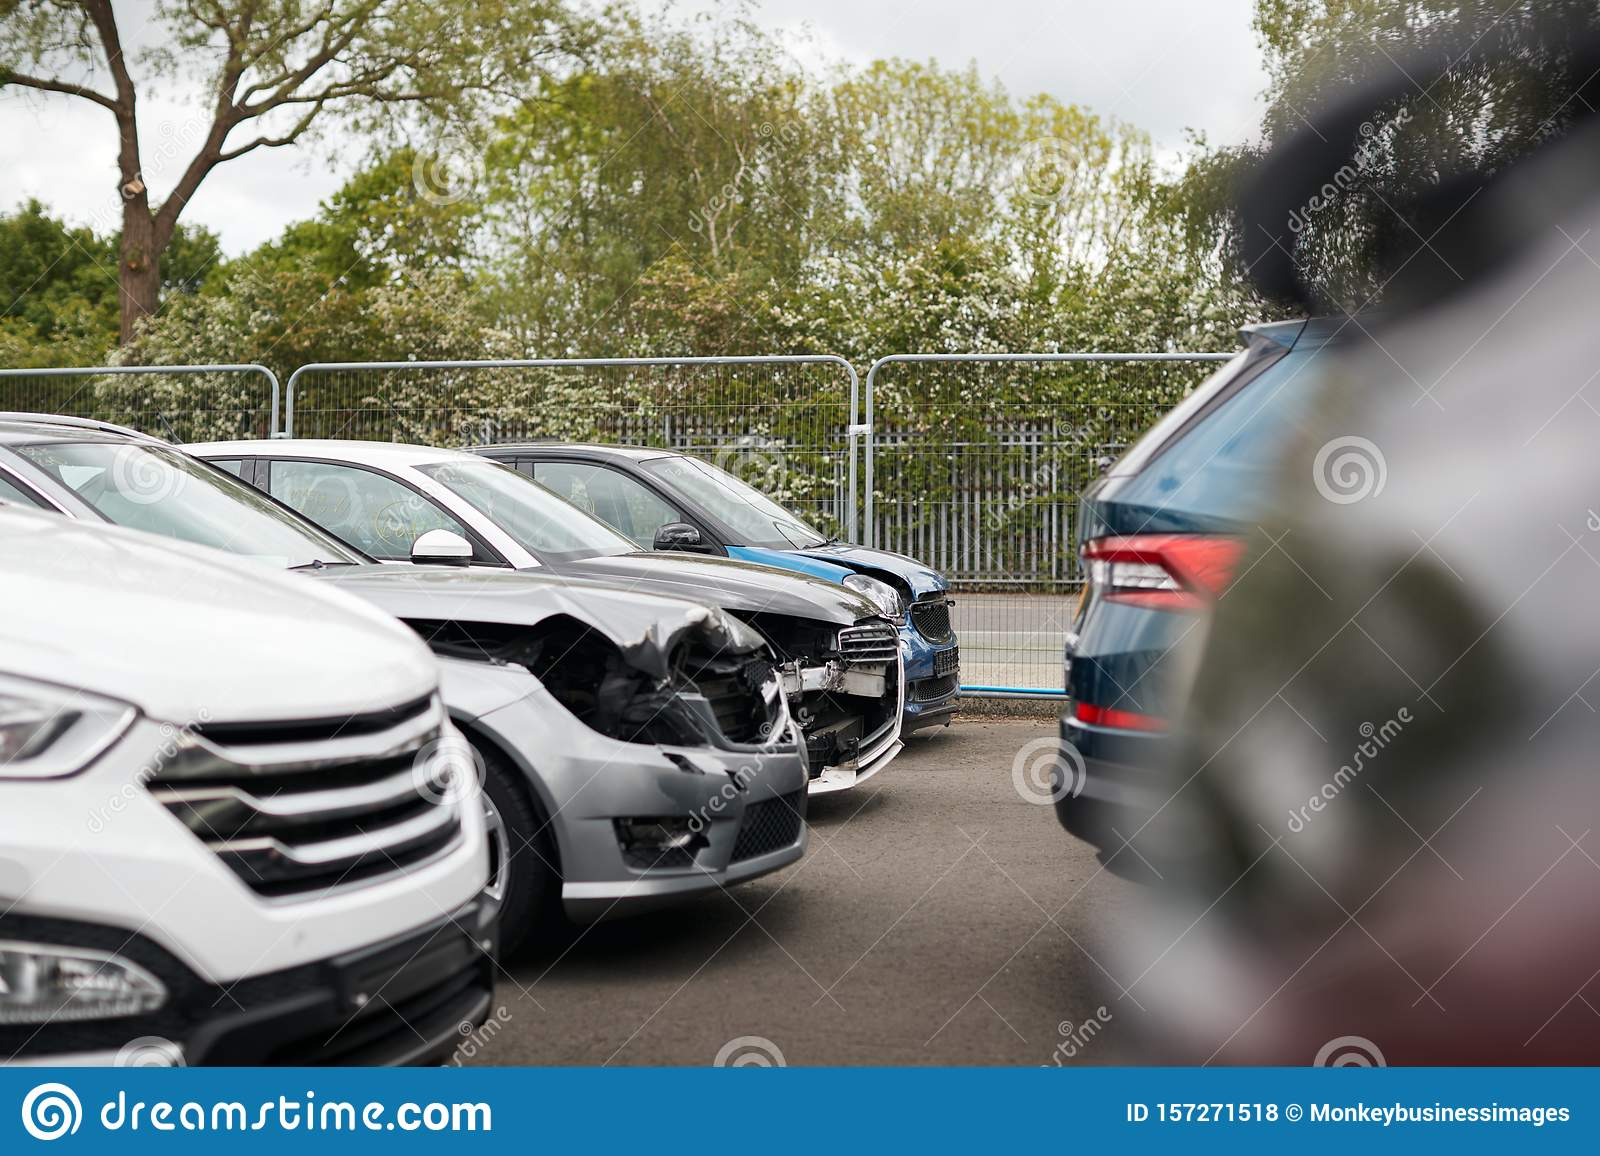 Cars Damaged In Motor Vehicle Accidents Parked In Garage ...